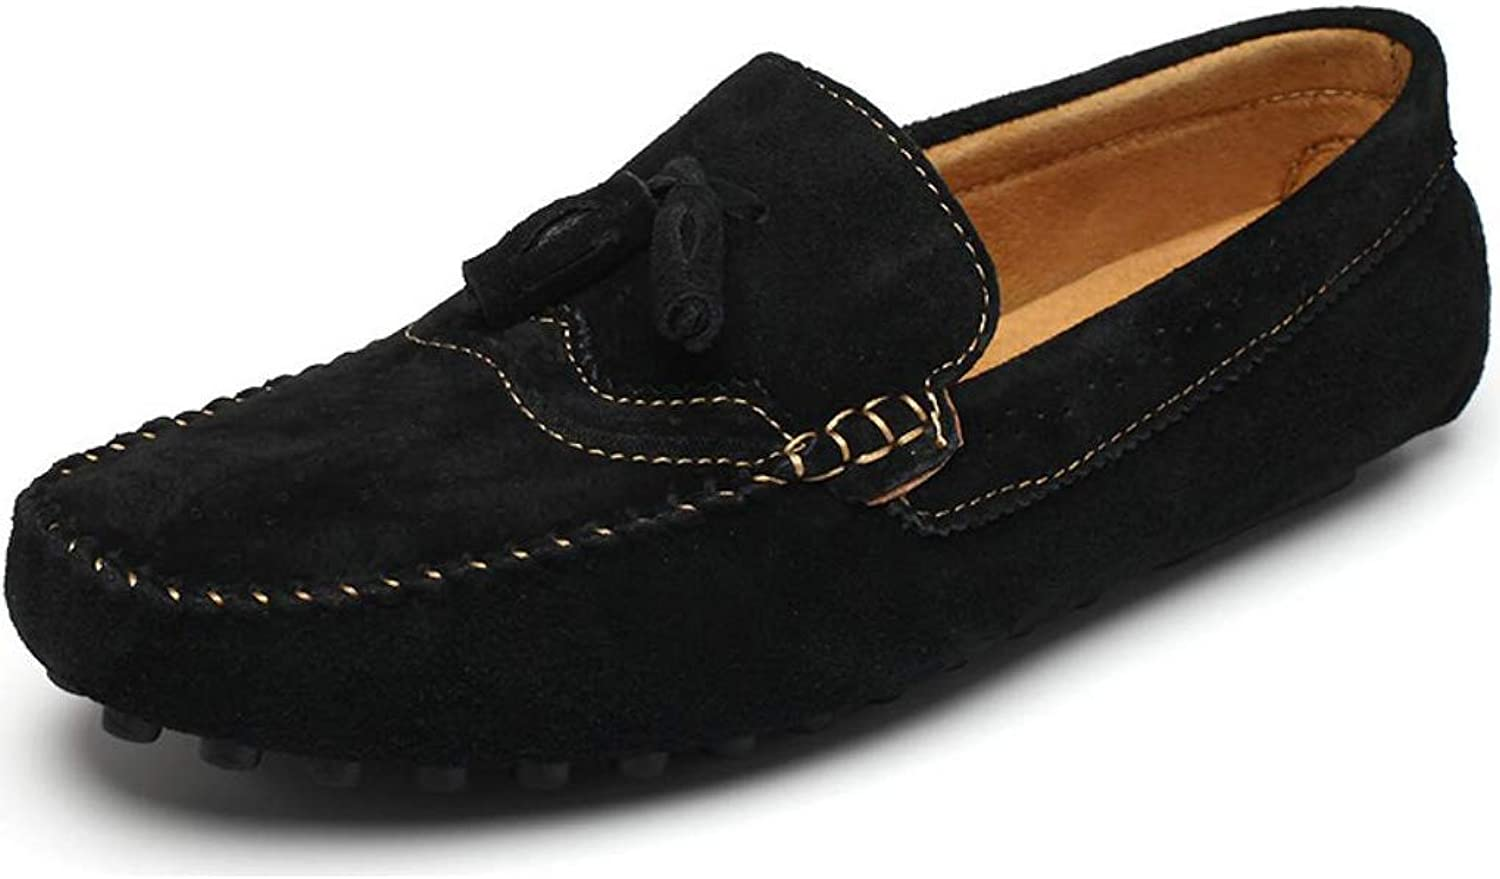 FuweiEncore Men's shoes Fall & Winter Casual Loafers & Slip-Ons Fashion Driving shoes, Hand seams Rounded office lazy walking shoes (color   D, Size   43)